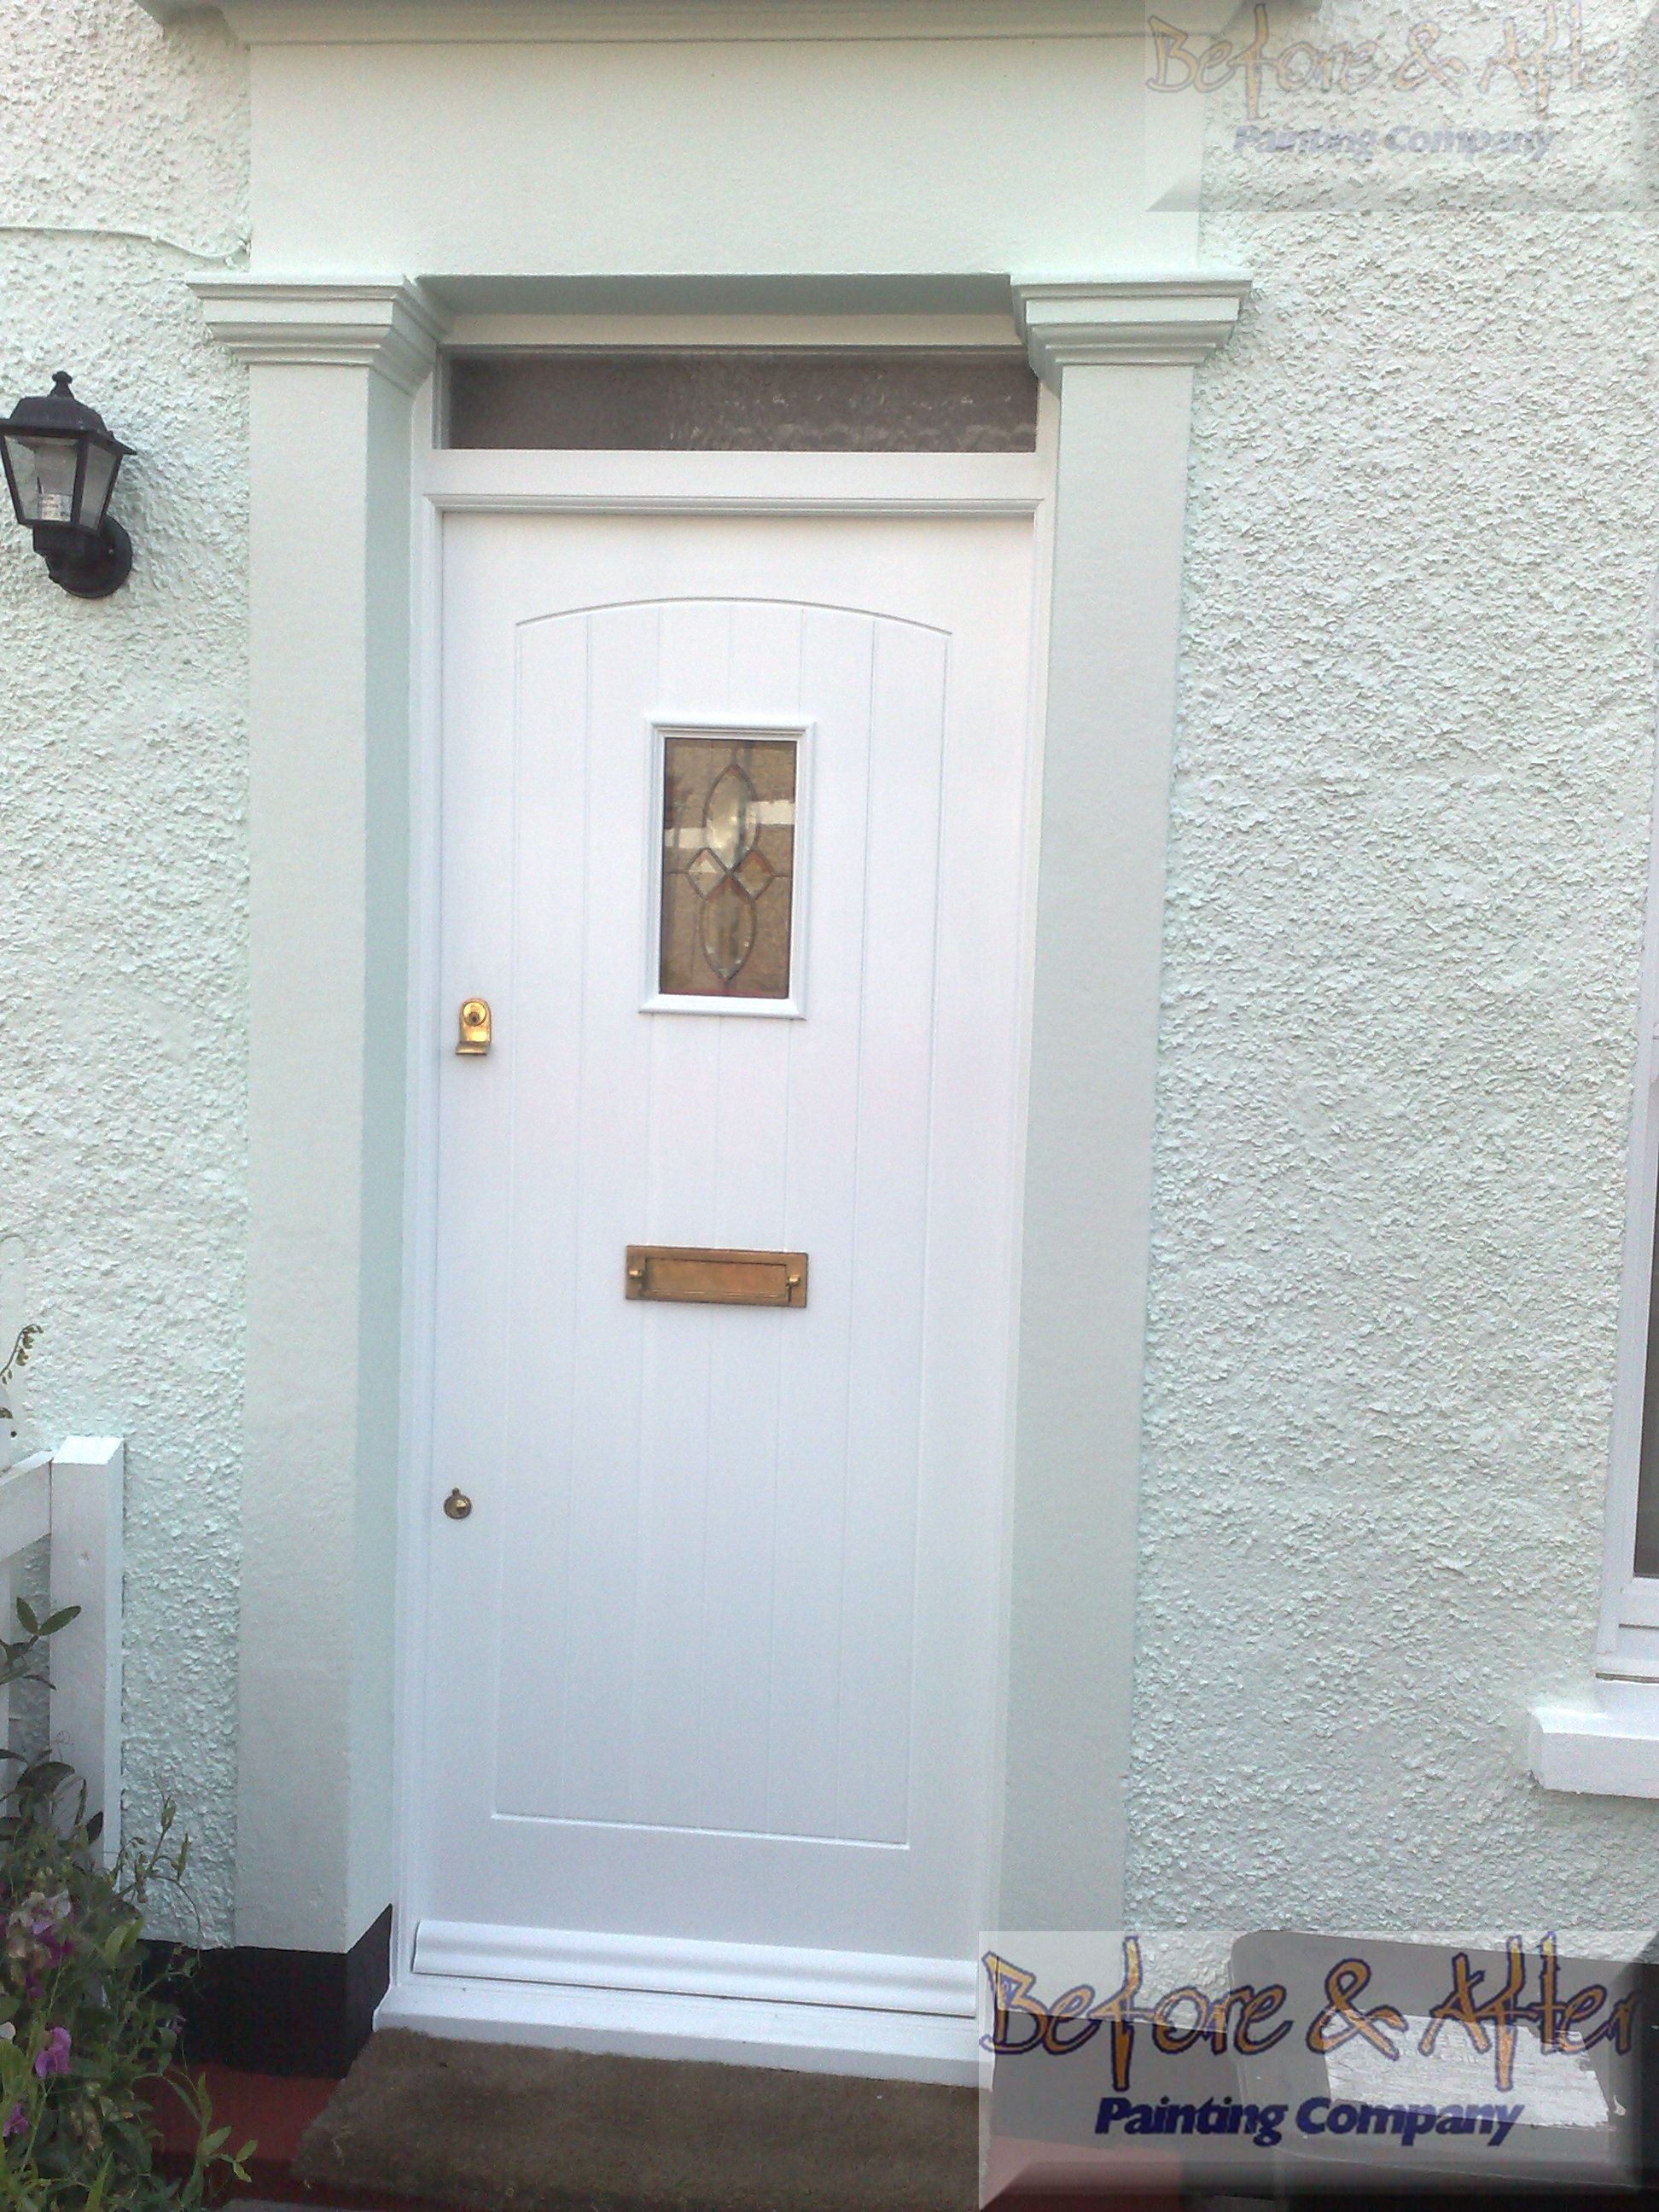 Albany smooth masonry paint - Seafoam. Front door - Sandtex flexi-gloss in brilliant white.